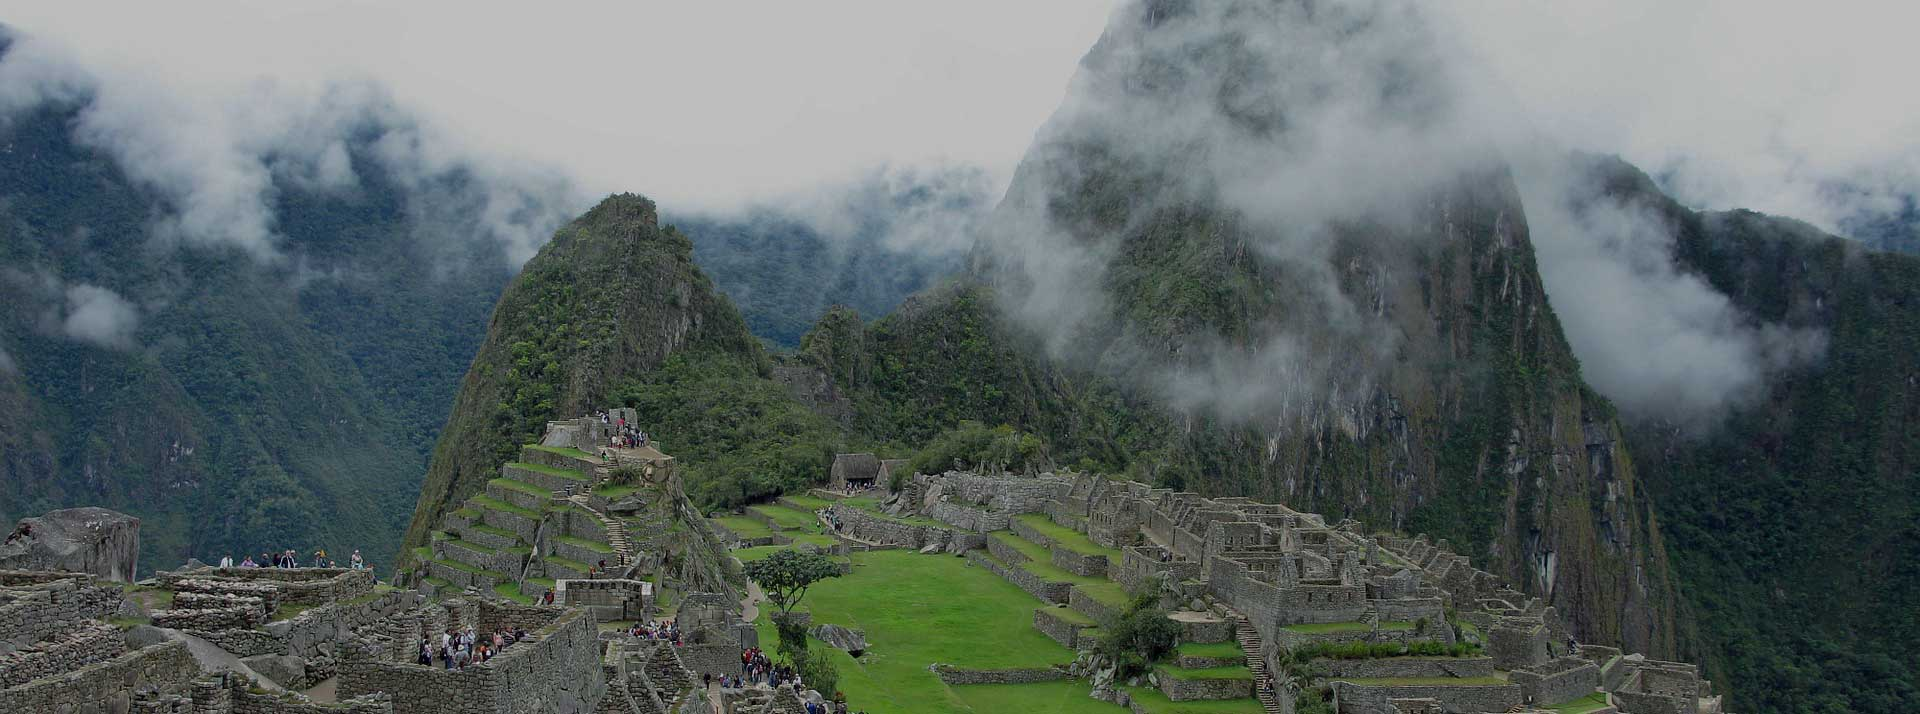 Join Project Left Behind in beautiful Peru!